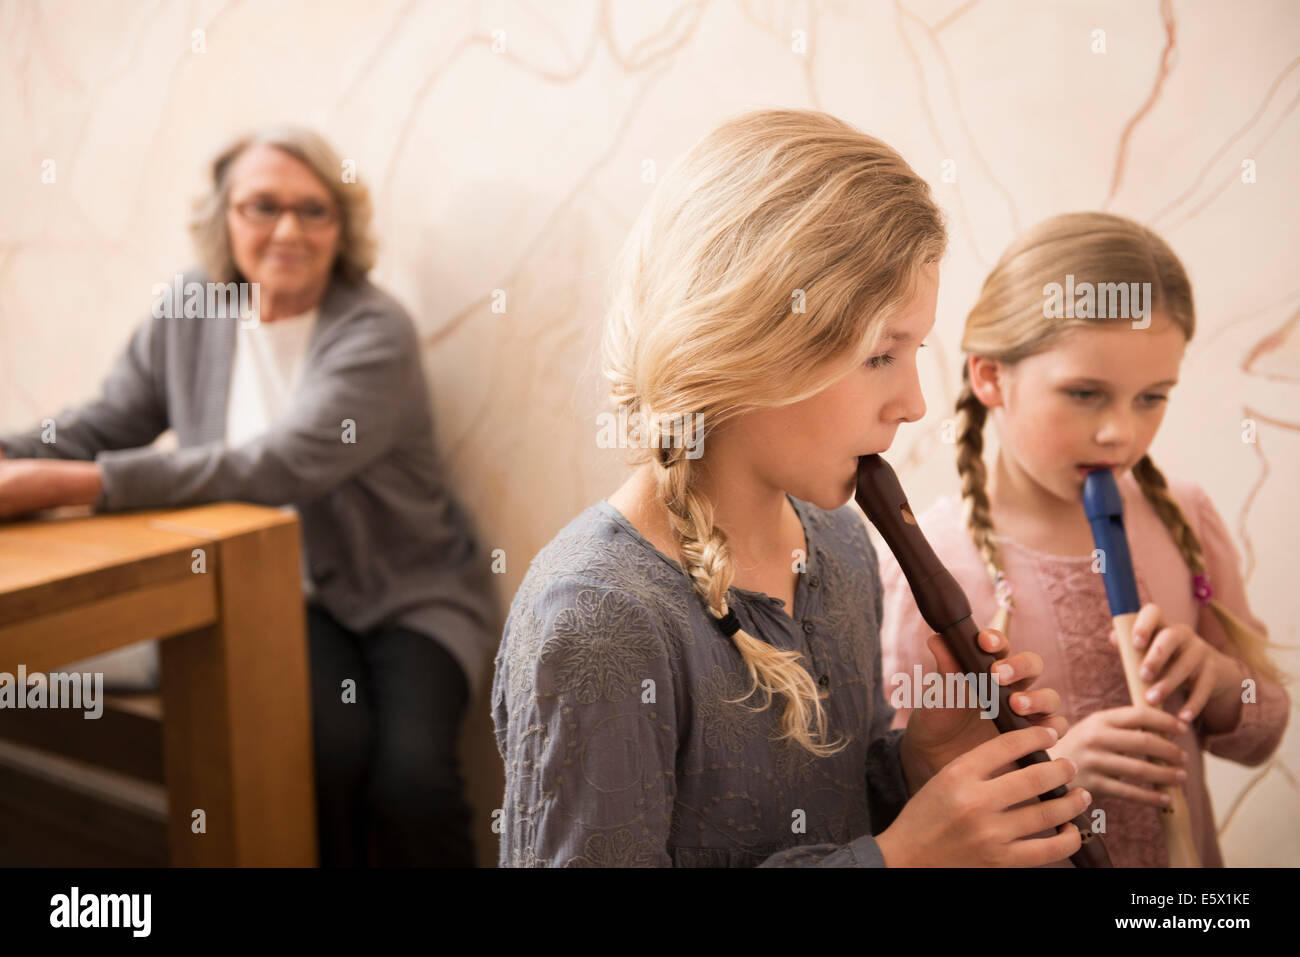 Two sisters playing recorders watched by grandmother - Stock Image